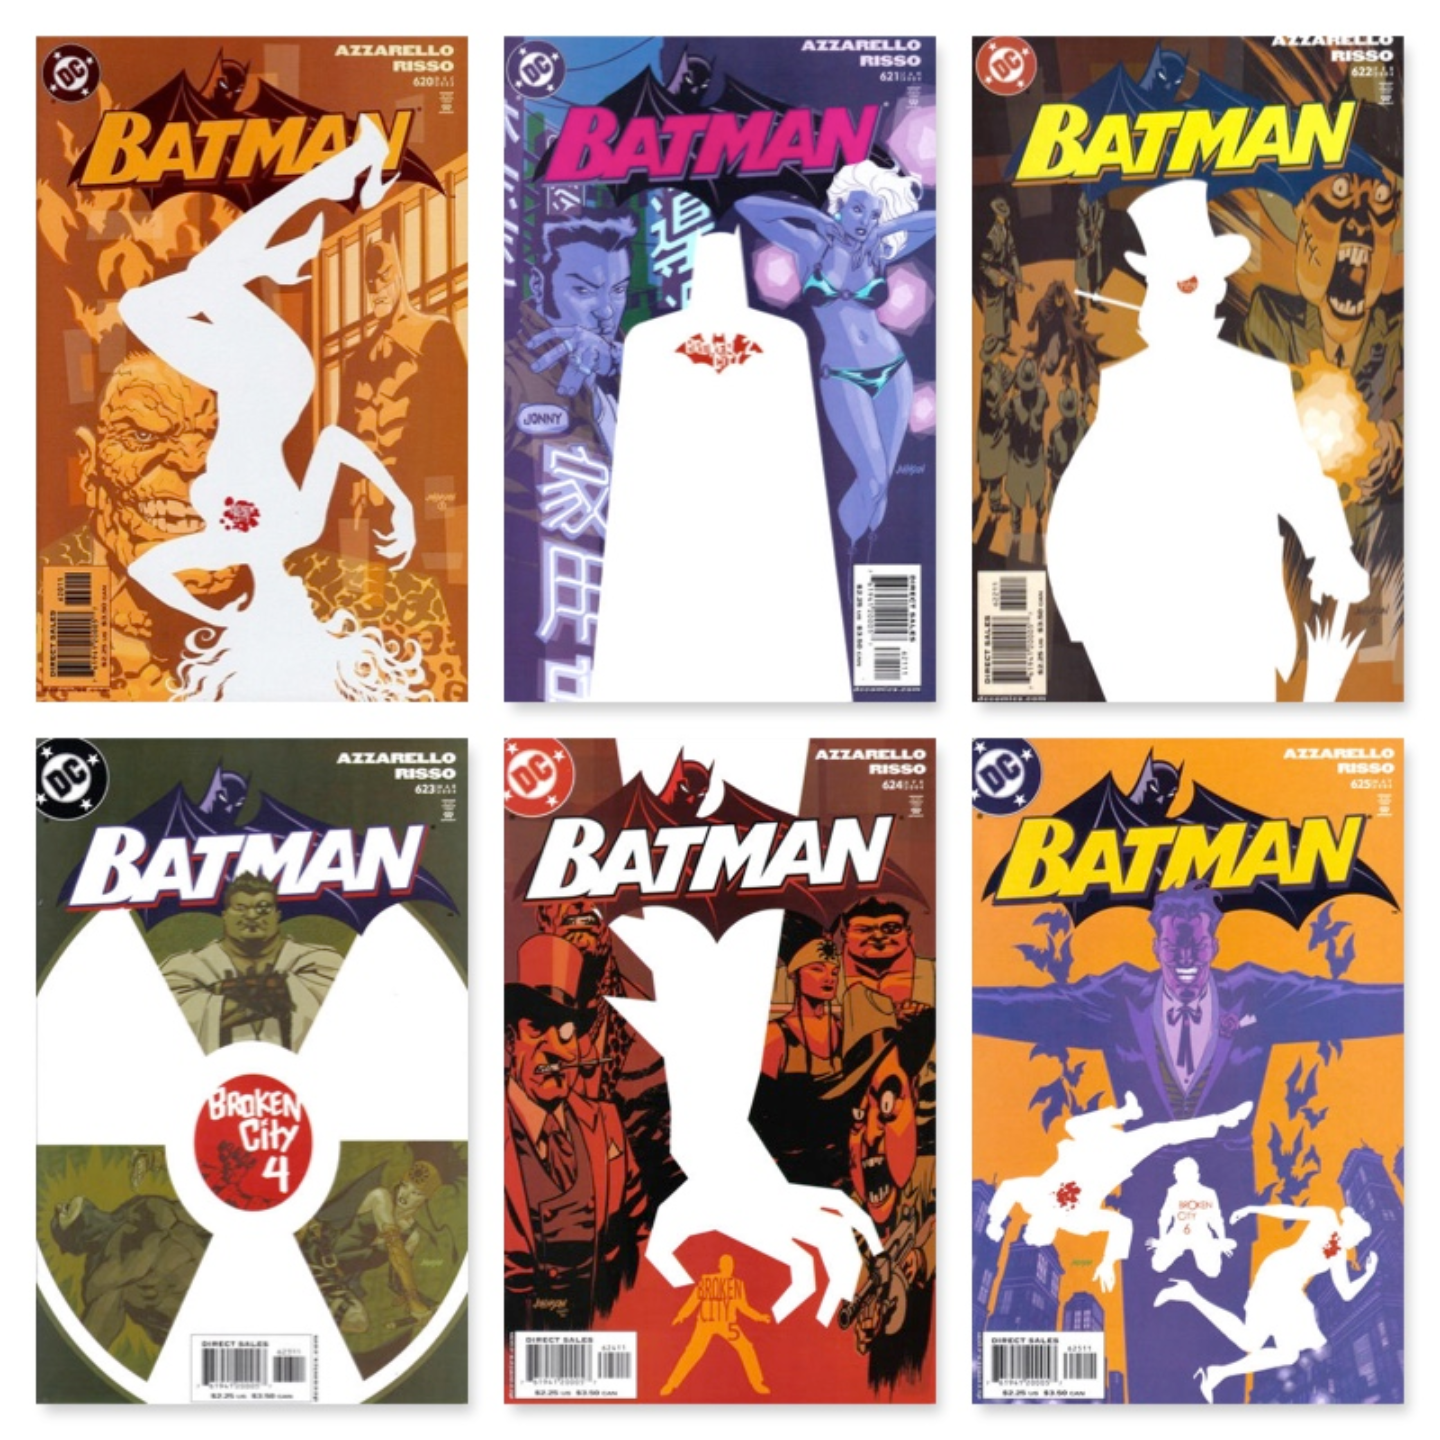 BATMAN #620 - #625 (6 PART STORY)